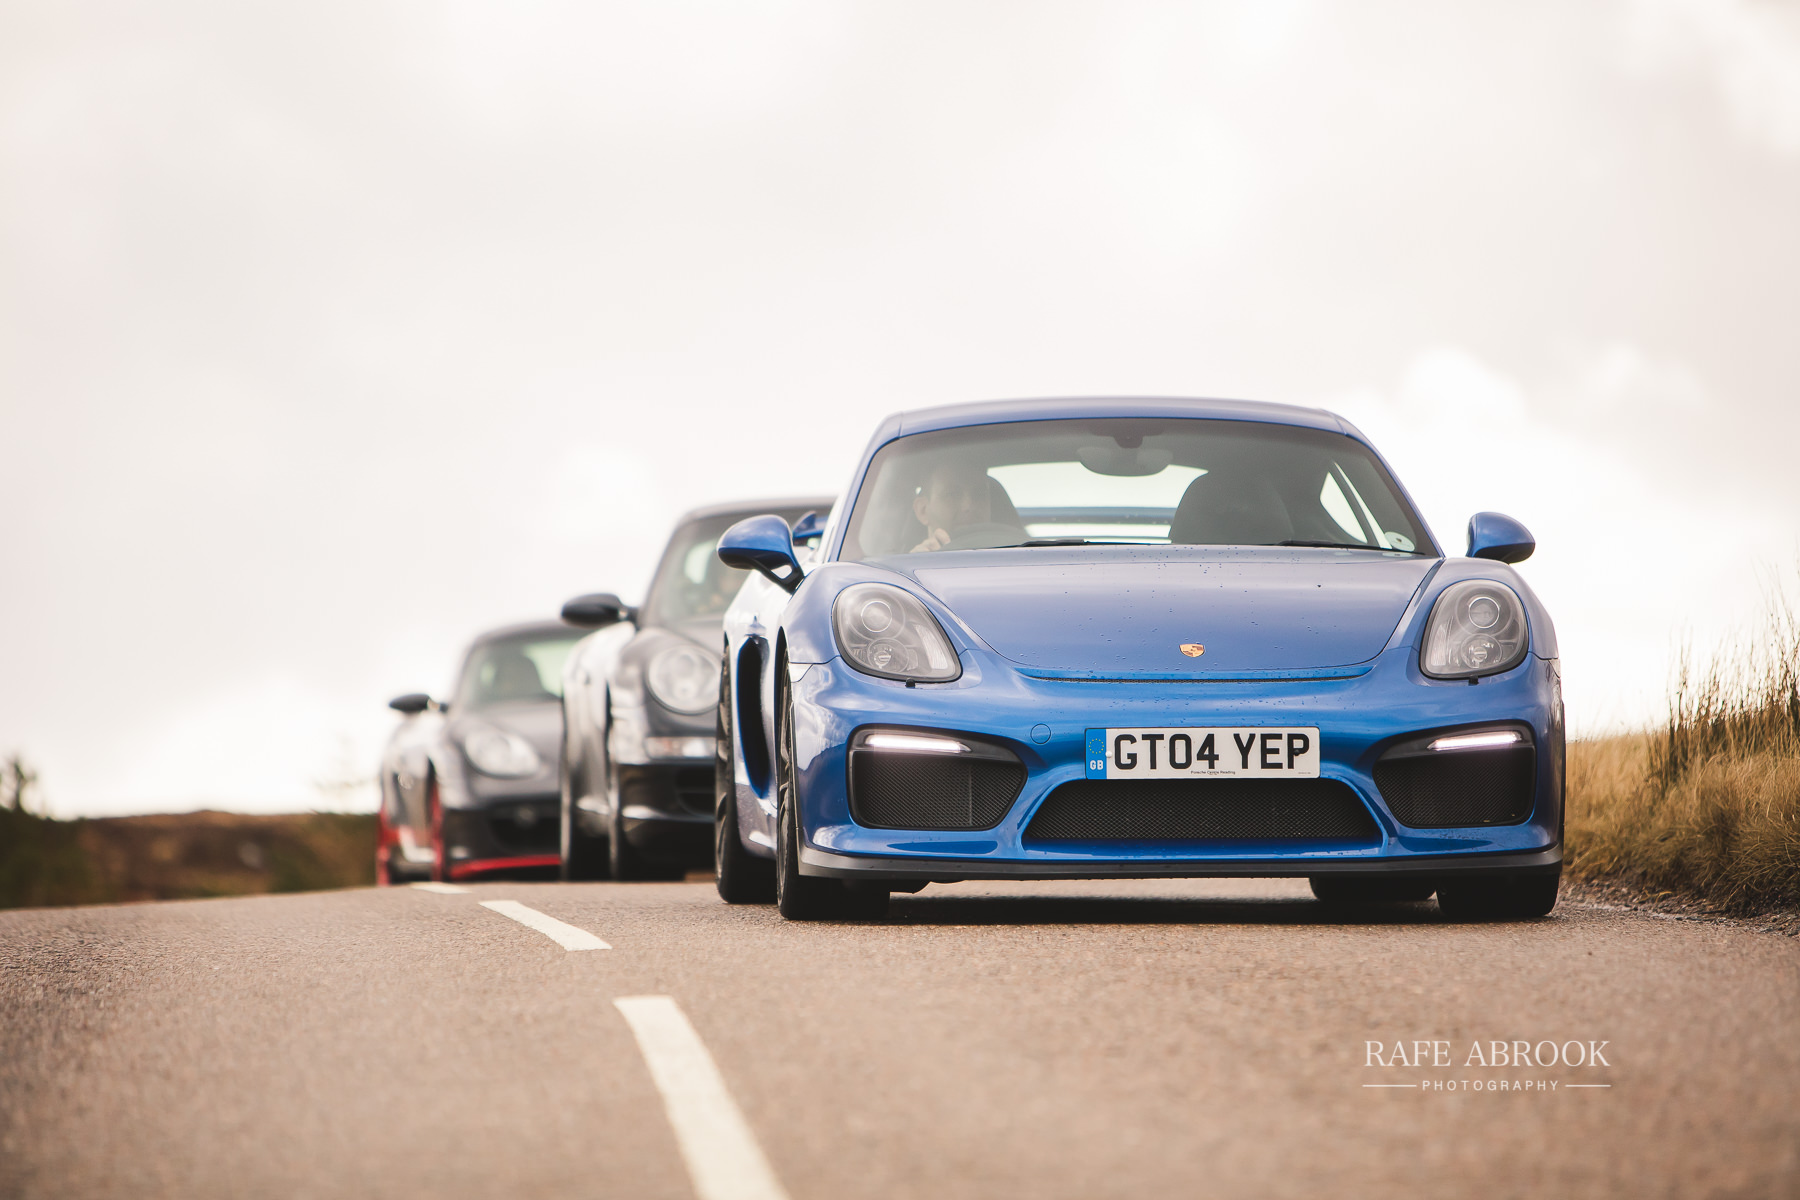 north coast 500 scotland porsche cayman gt4 golf r estate rafe abrook photography-1140.jpg